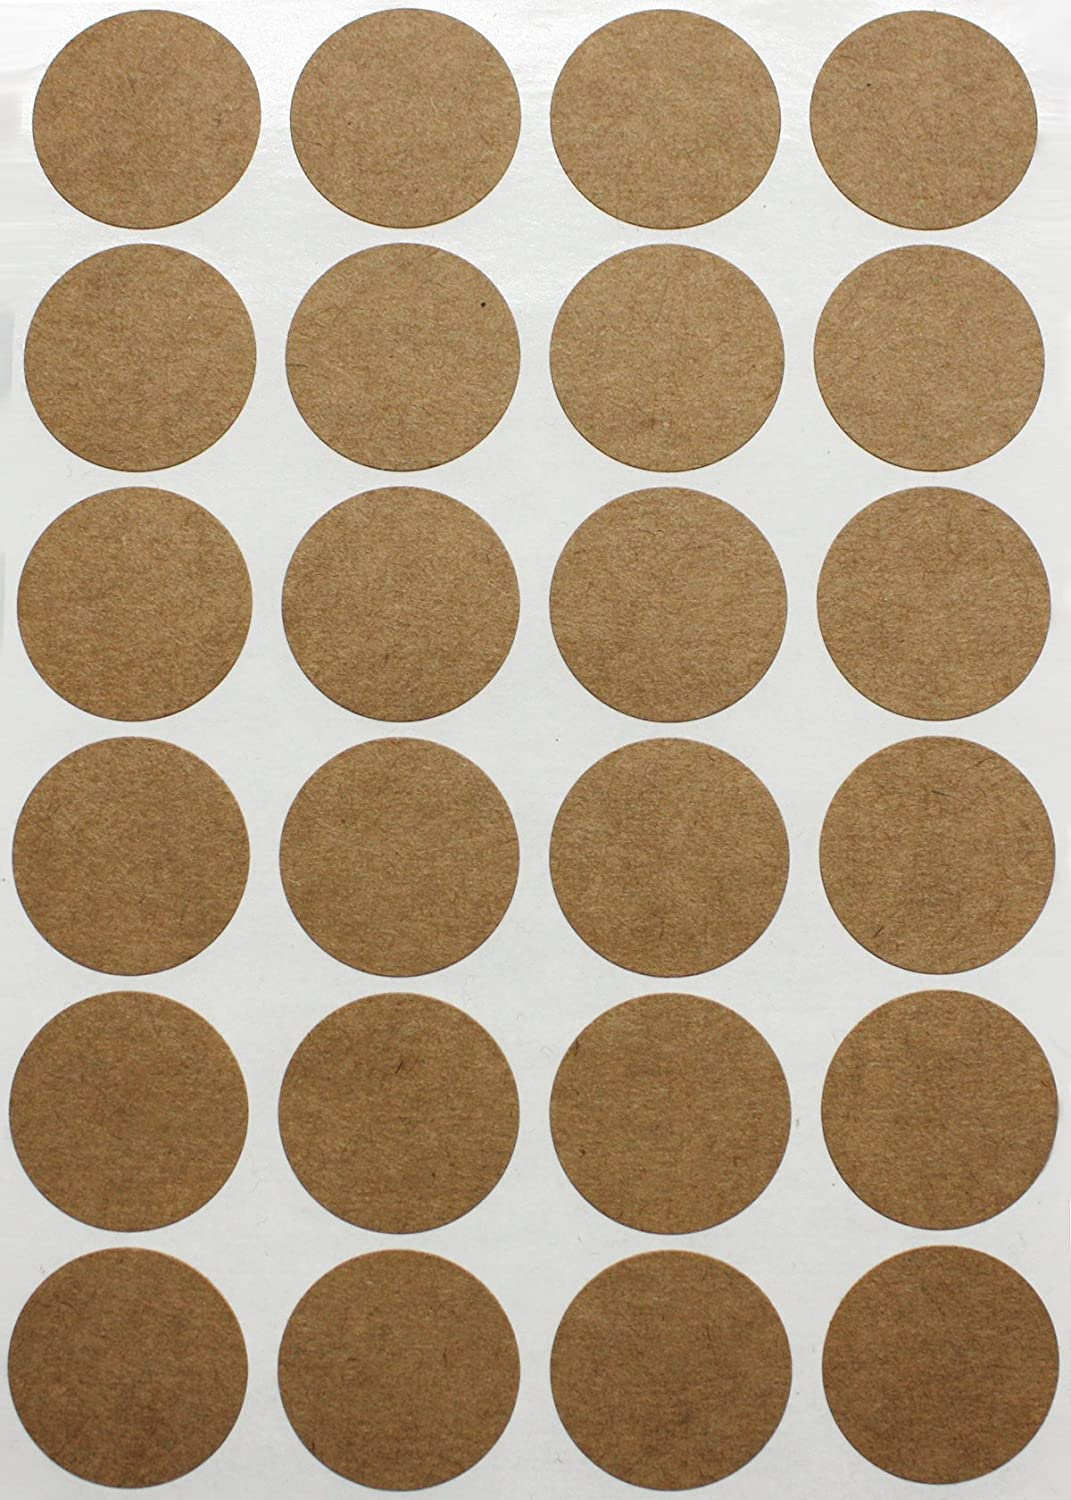 Kraft Paper Coding dot label self-adhesive peel and stick Brown Natural Dot Stickers 1 Inch Round Circle Color Coding Labels Try to Decorate by Your Own